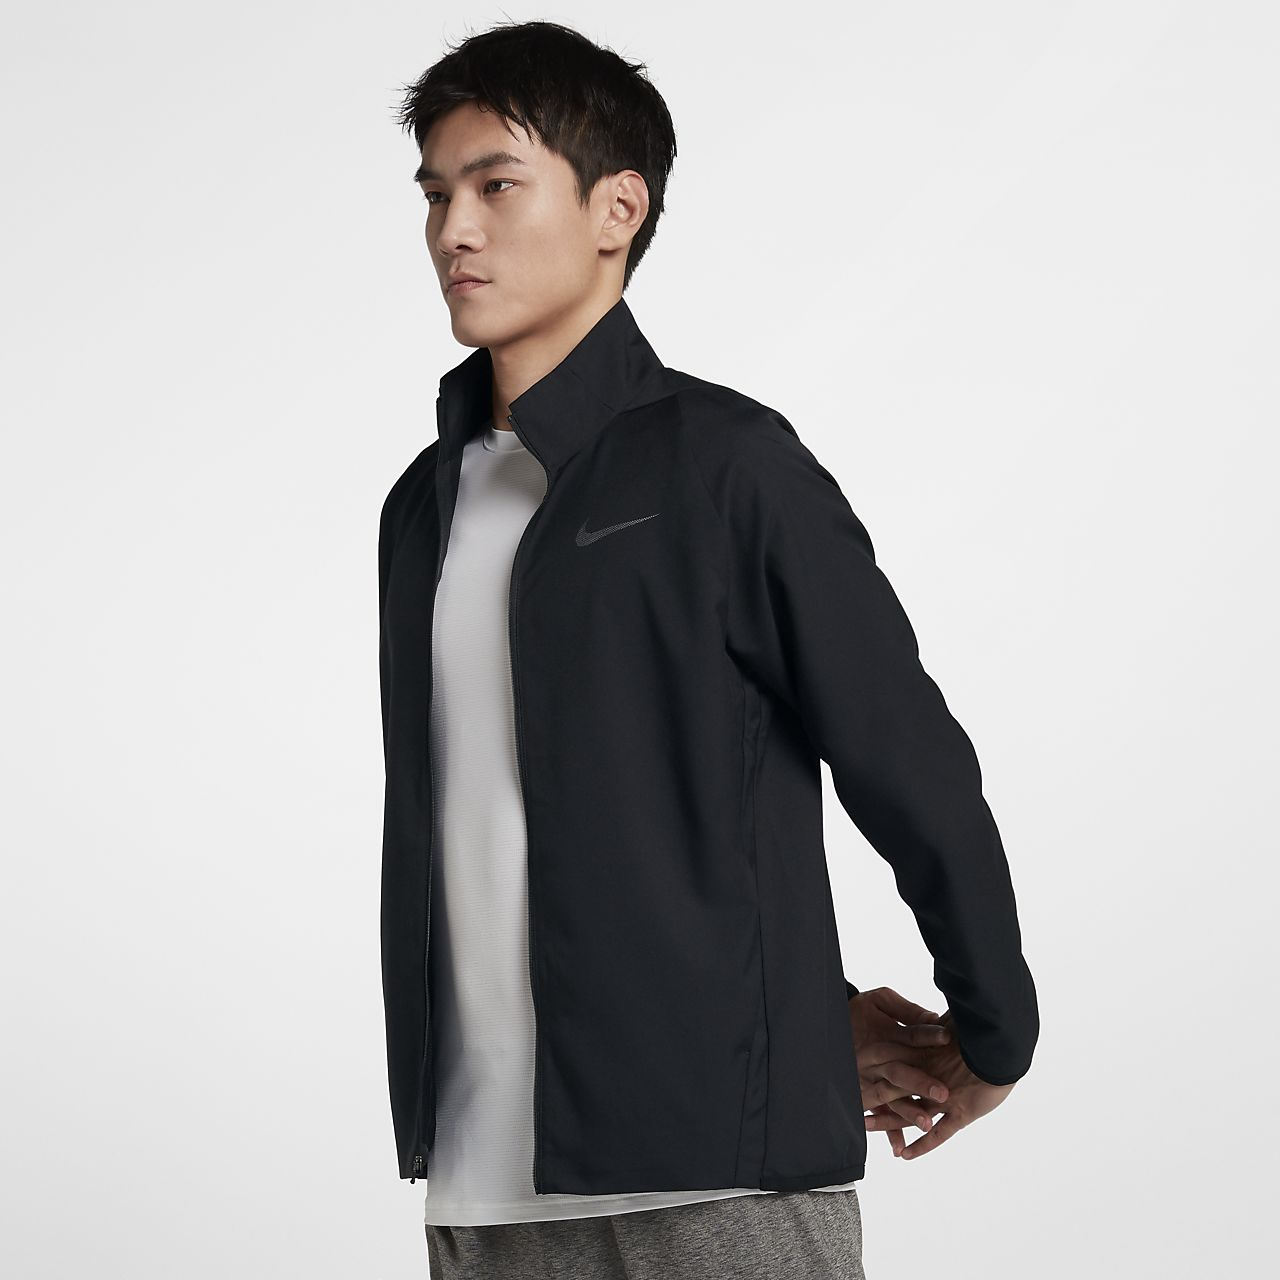 Nike Dri-FIT Men's Woven Training Jacket